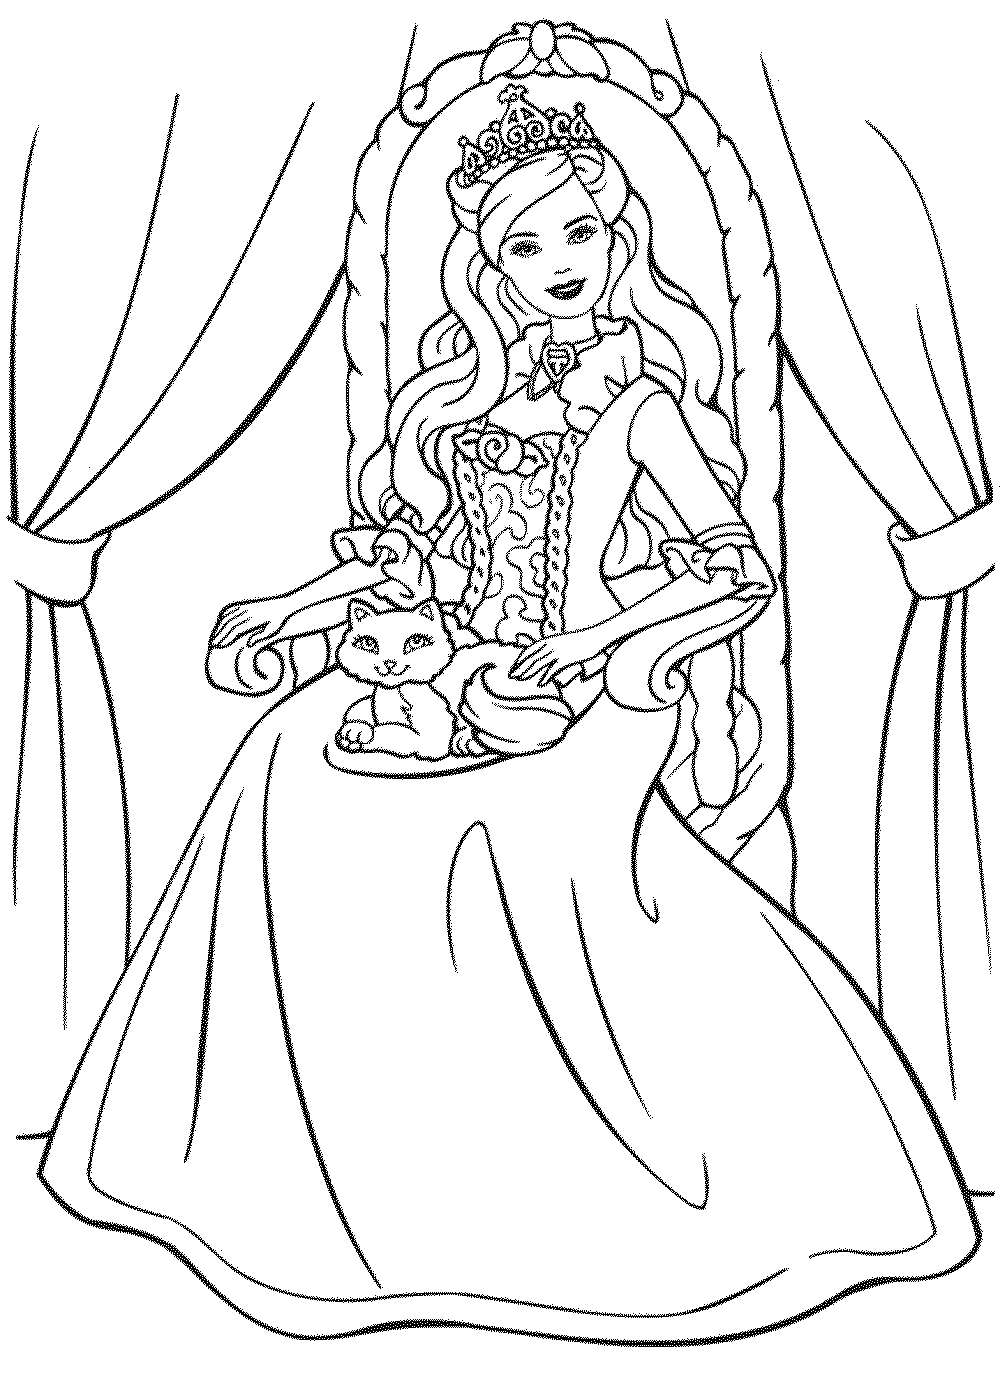 Princess-barbie-coloring-pages BestAppsForKids.com